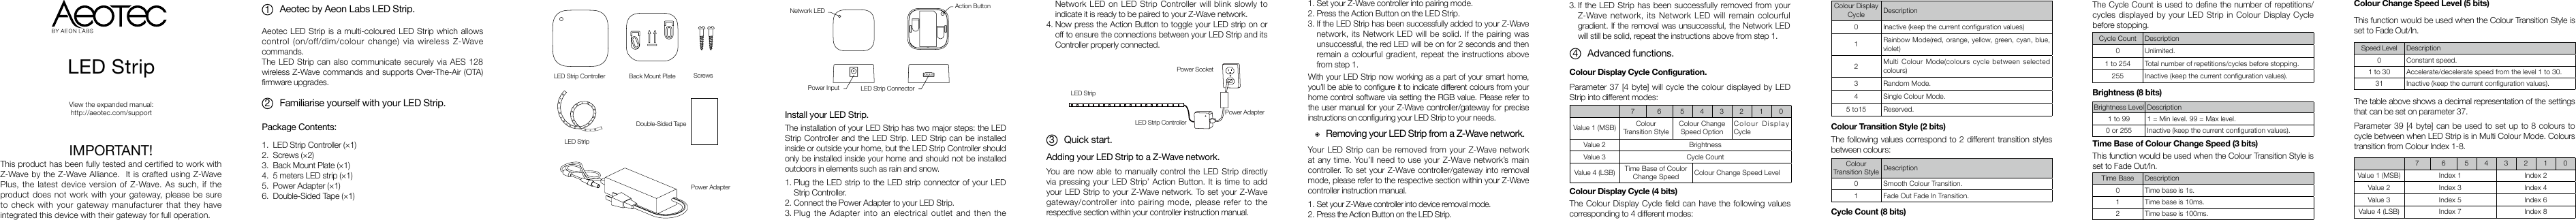 Aeon Labs Ft121 Led Strip  Colorstrip User Manual